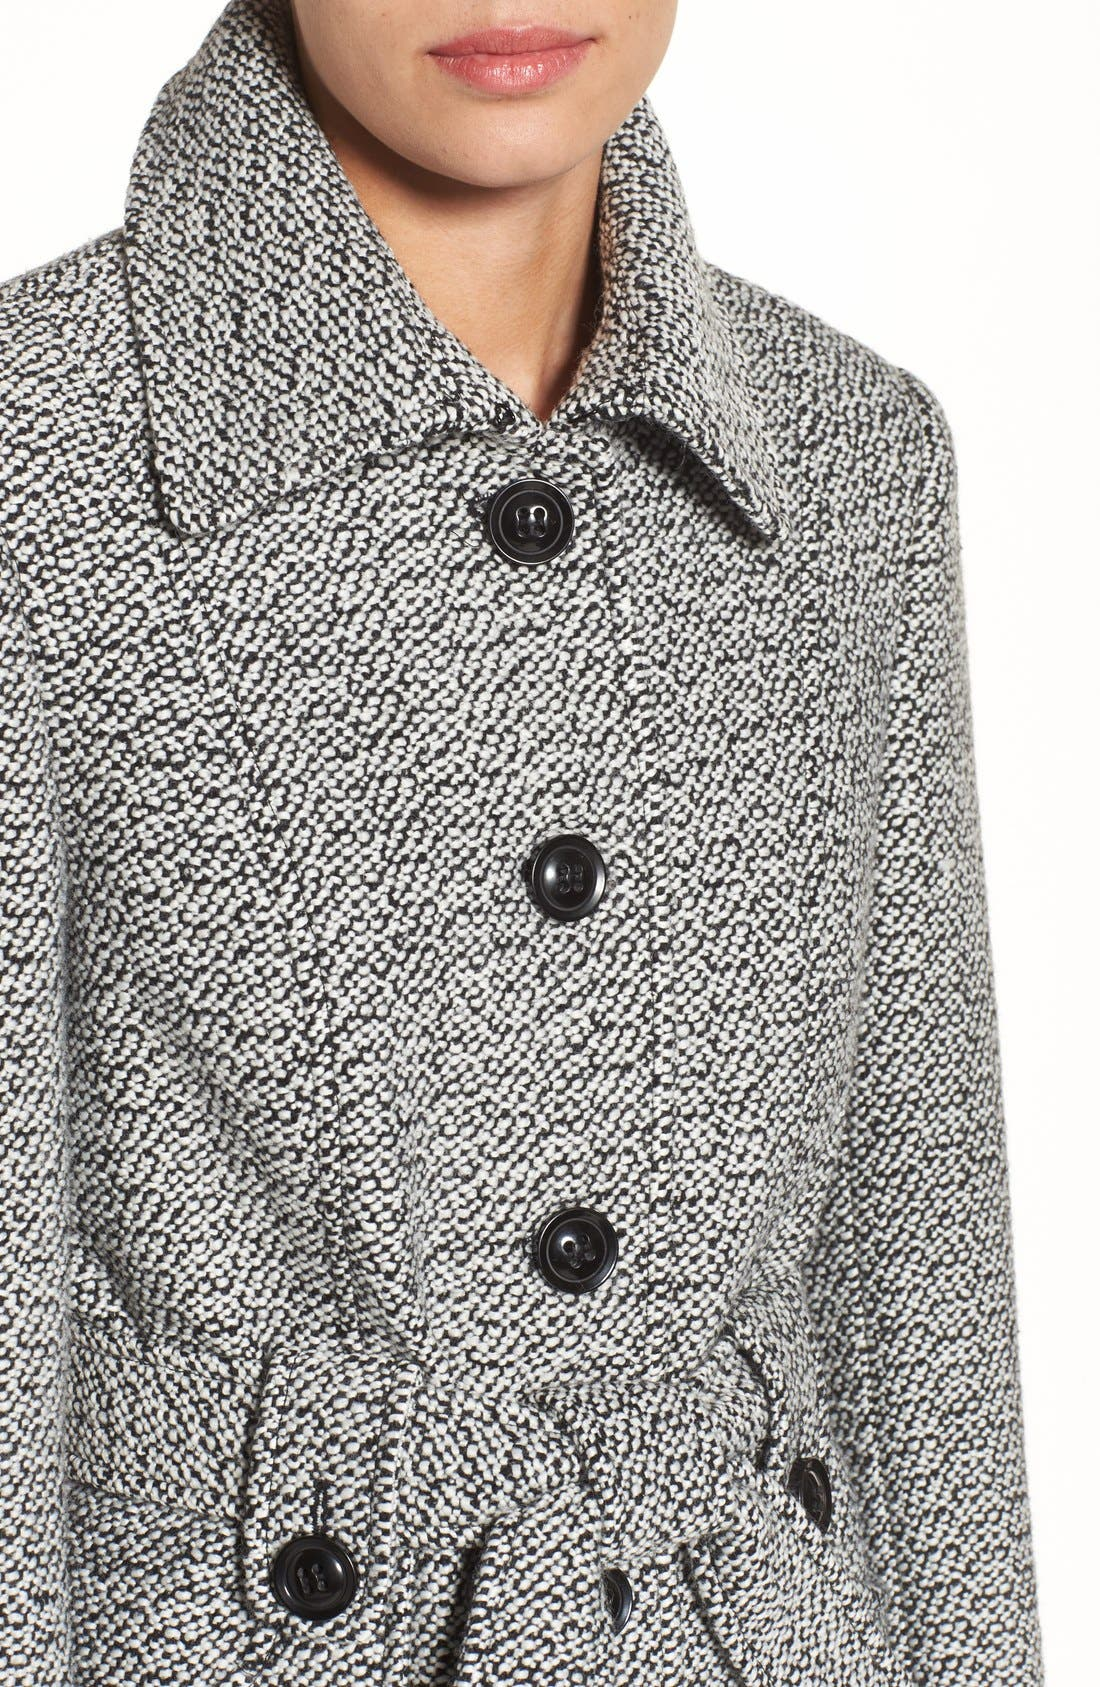 Belted Tweed Coat,                             Alternate thumbnail 5, color,                             Black/ White